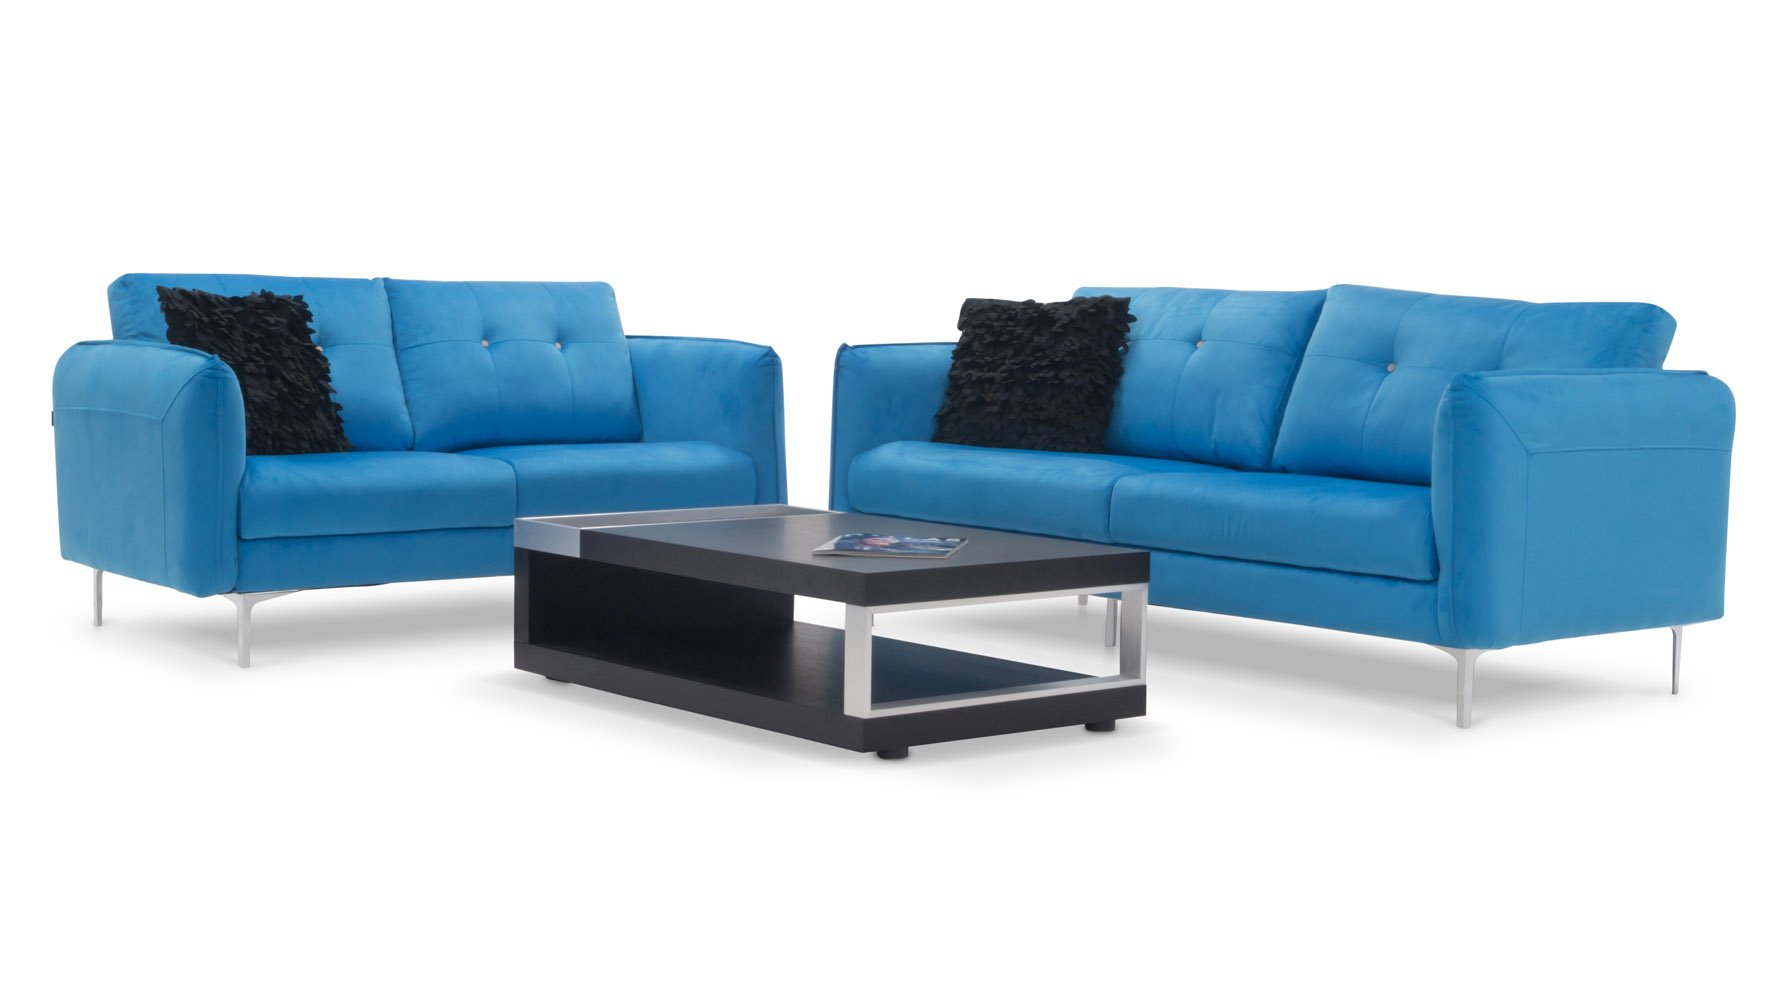 Skyler 2 3 blue fabric sofa set zuri furniture for Couch sofa set